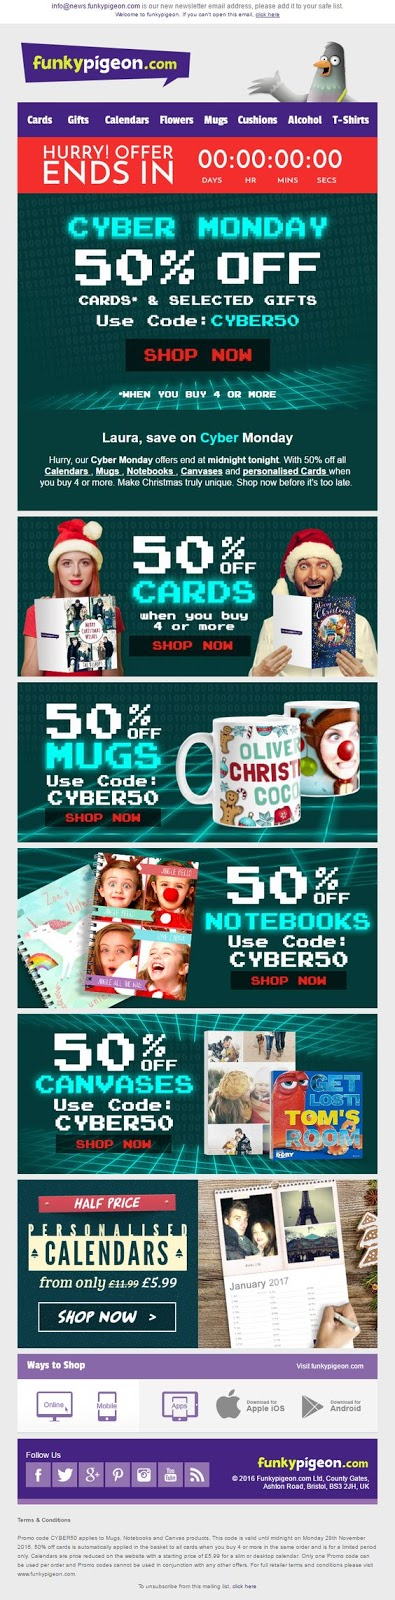 Screenshot showing multiple cyber monday banners